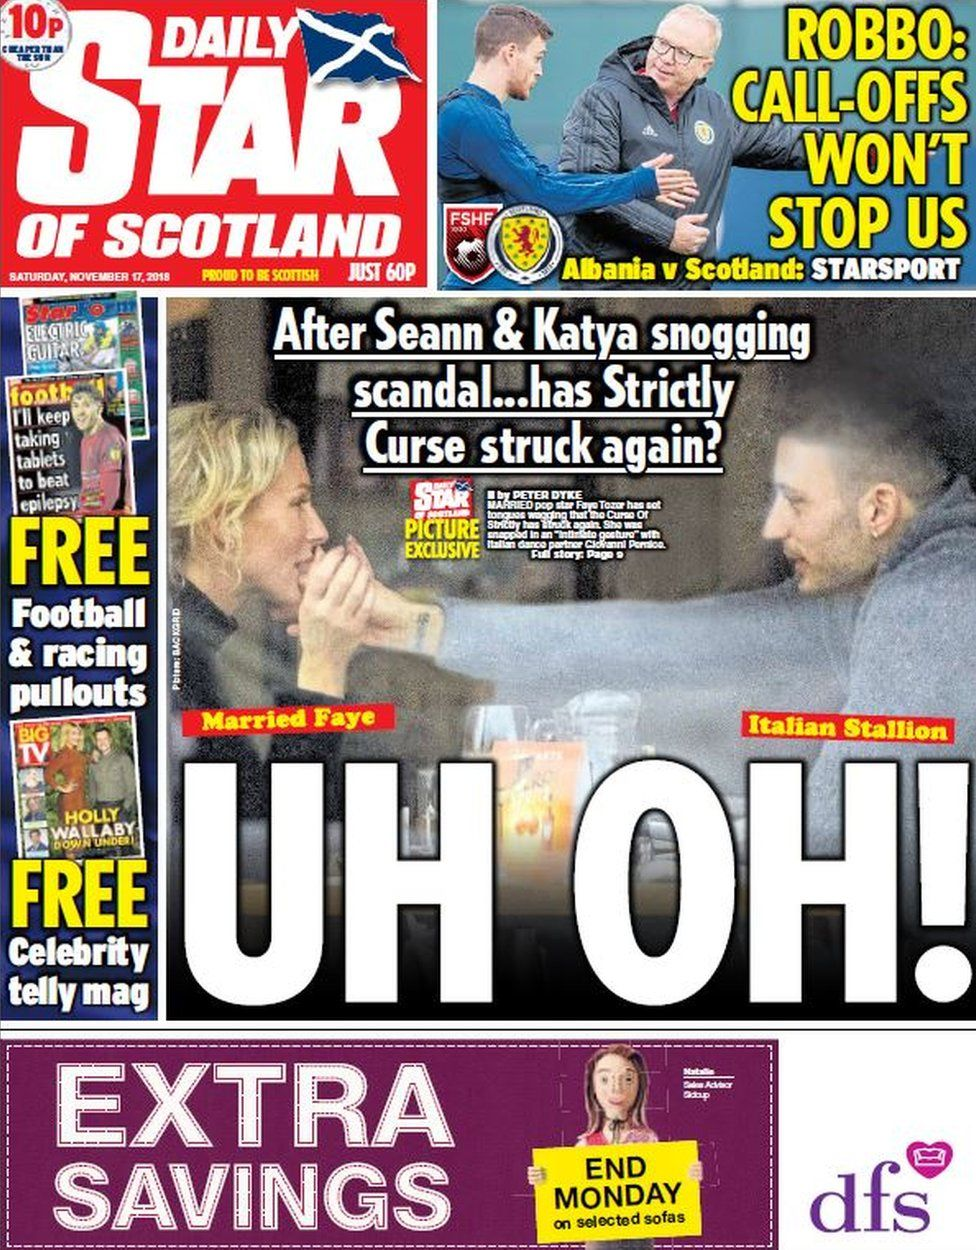 The Daily Star of Scotland